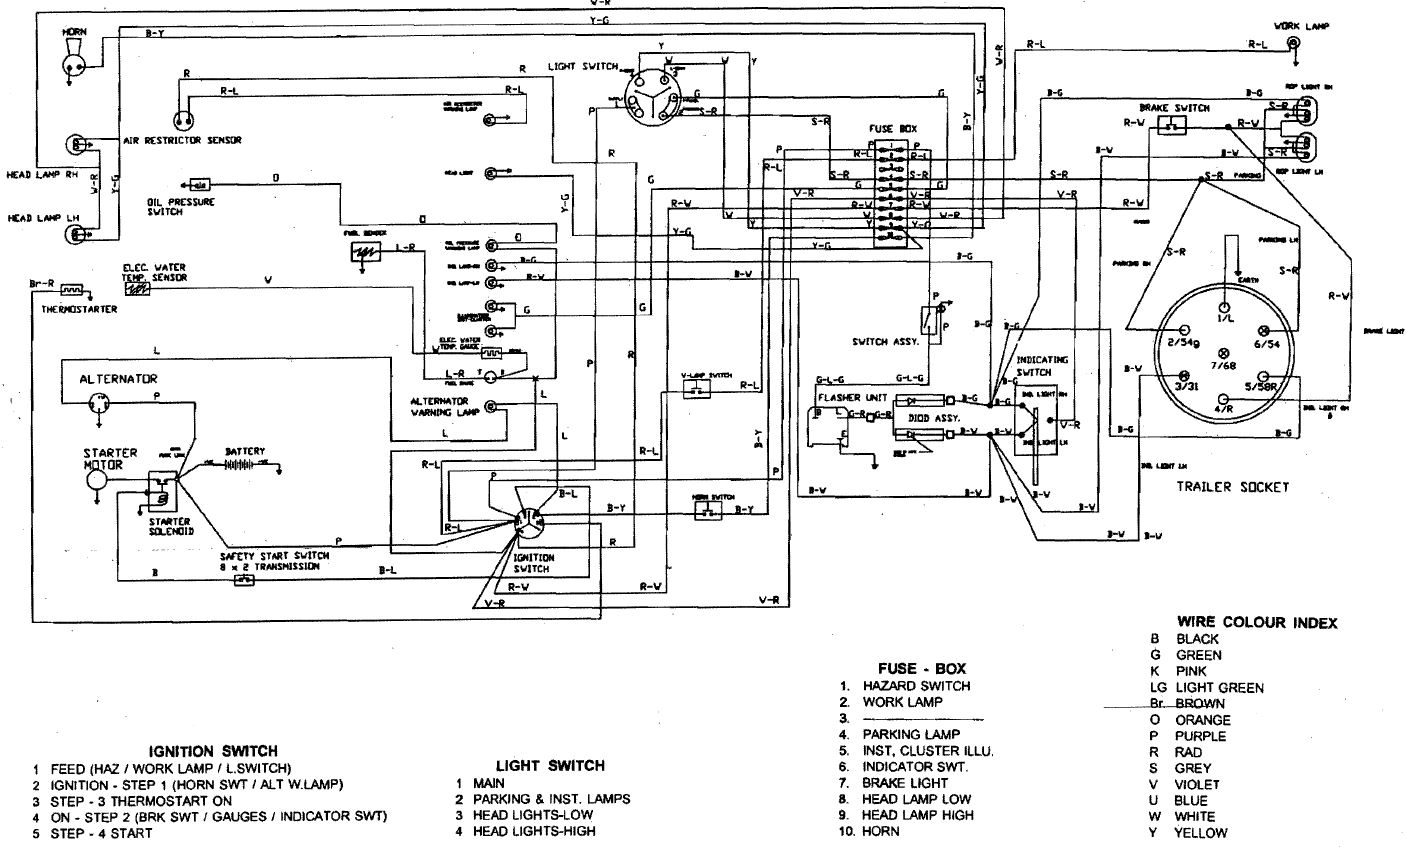 20158463319_b82d524c3d_o ignition switch wiring diagram  at crackthecode.co